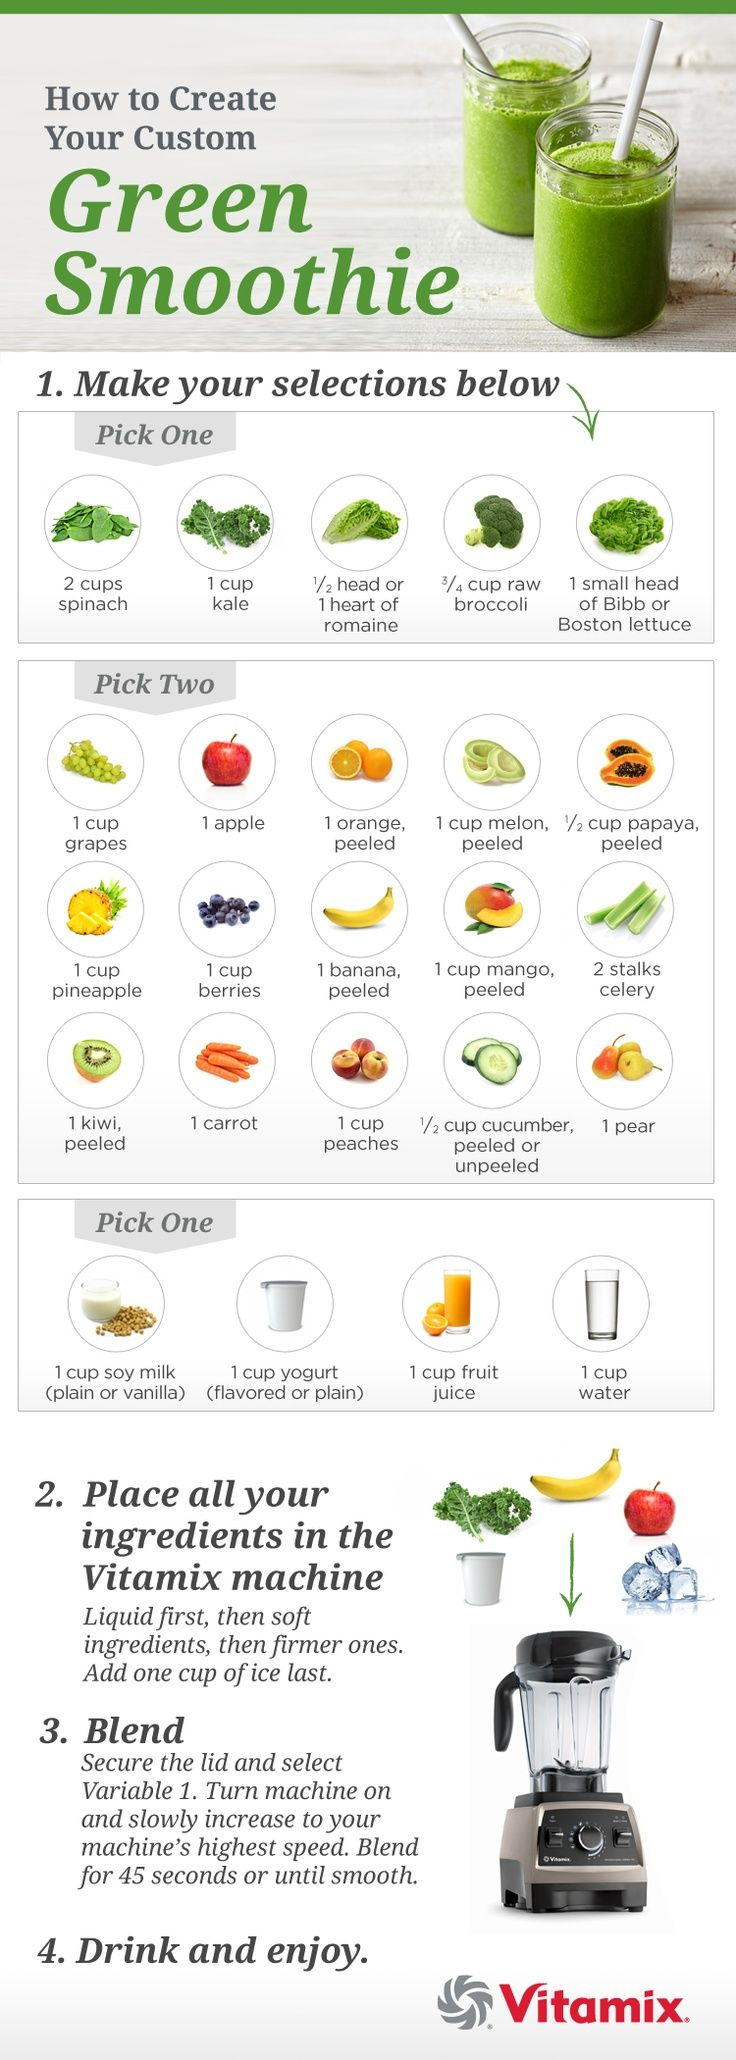 creating green smoothies! The only problem with this is that they don't recommend combinations. You could do broccoli with celery, cucumbers, and a cup of water. Wouldn't taste good at all.